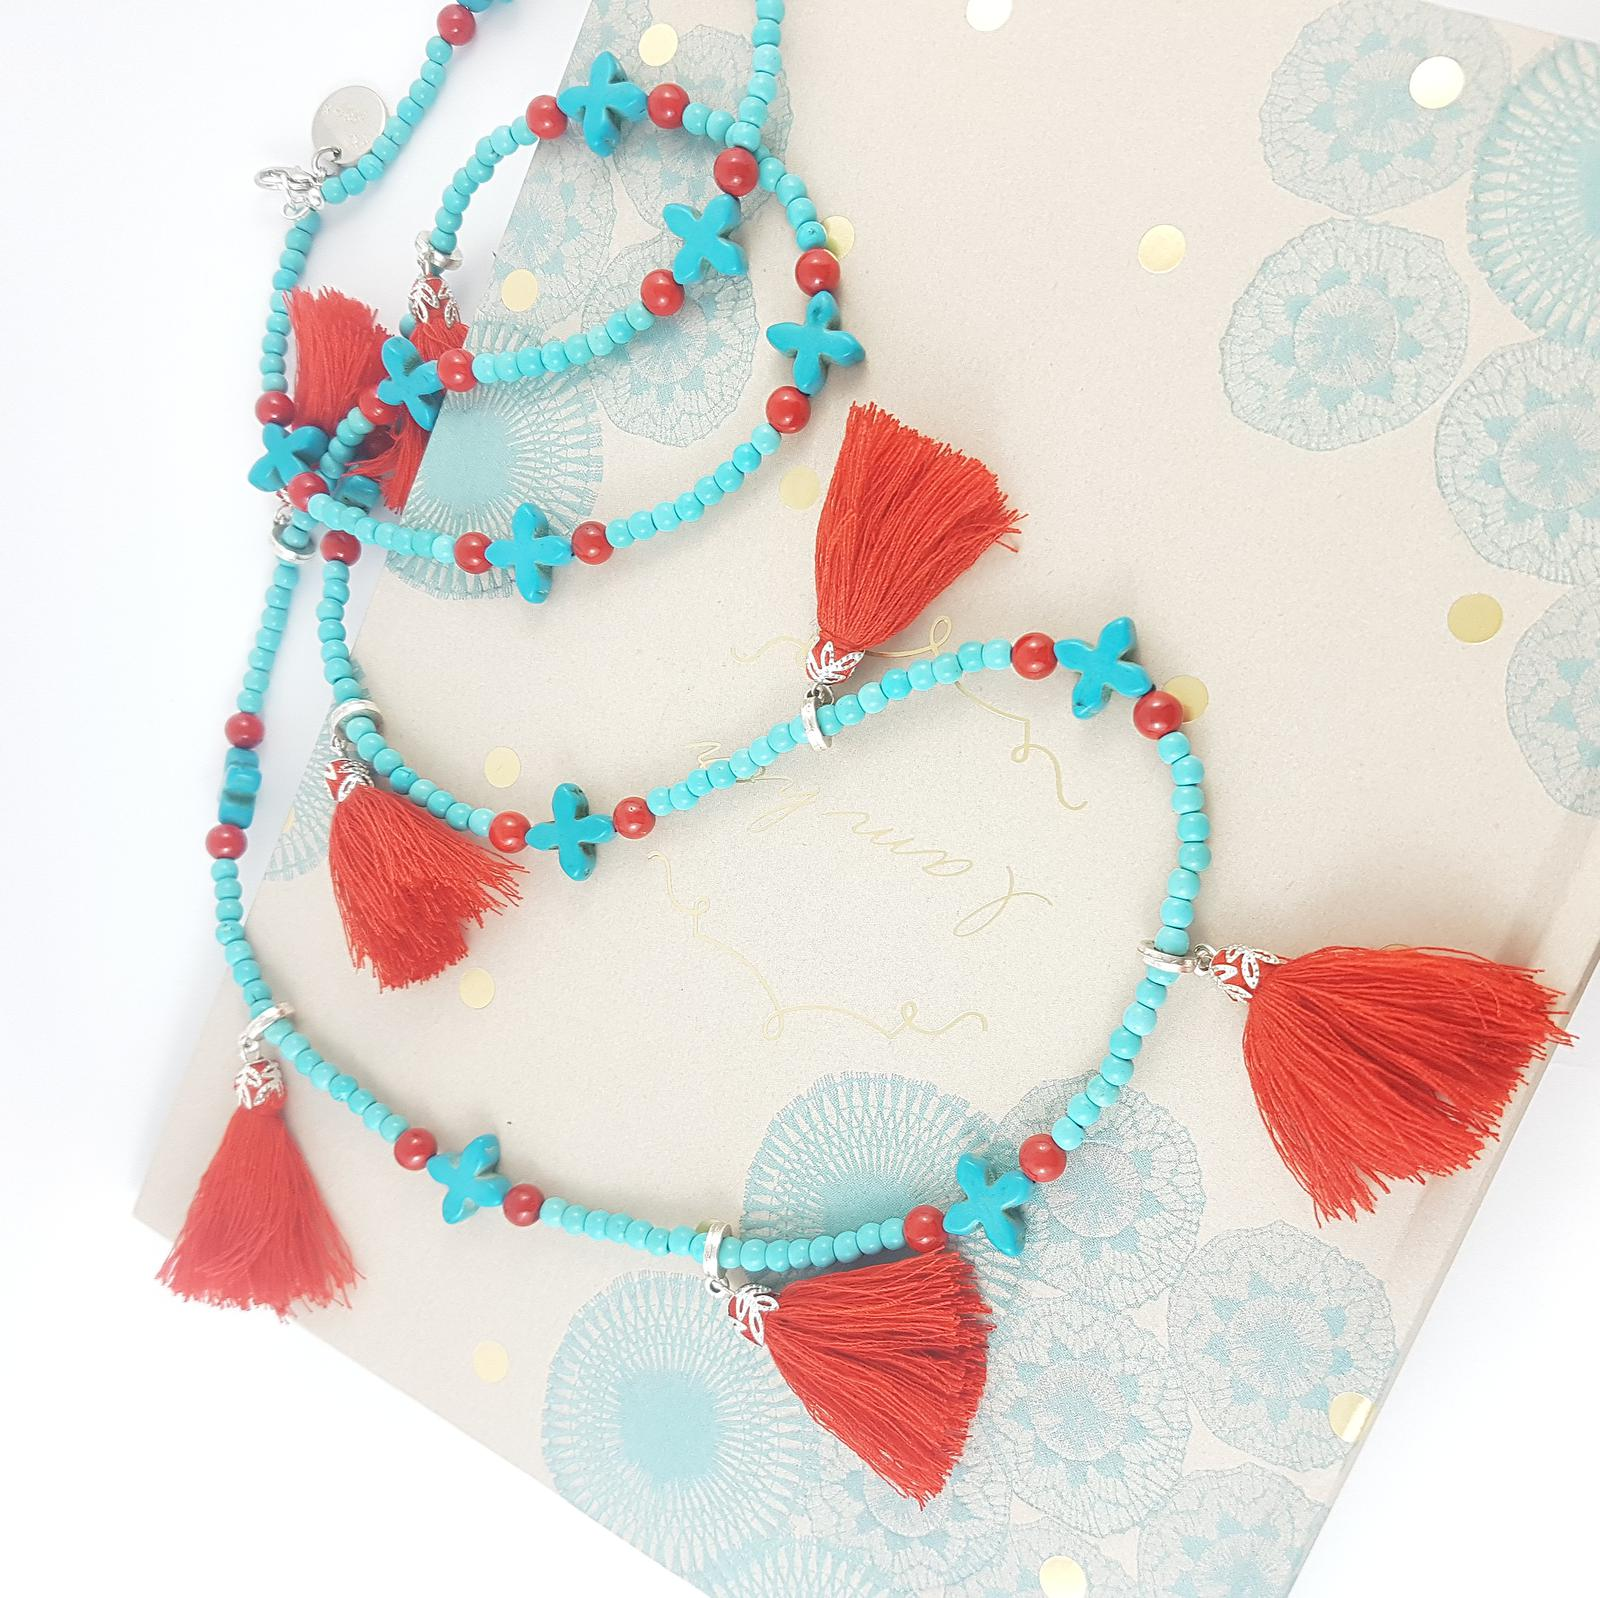 Tijuana Sunshine - howlite, magnesite, riverstone and cotton tassels